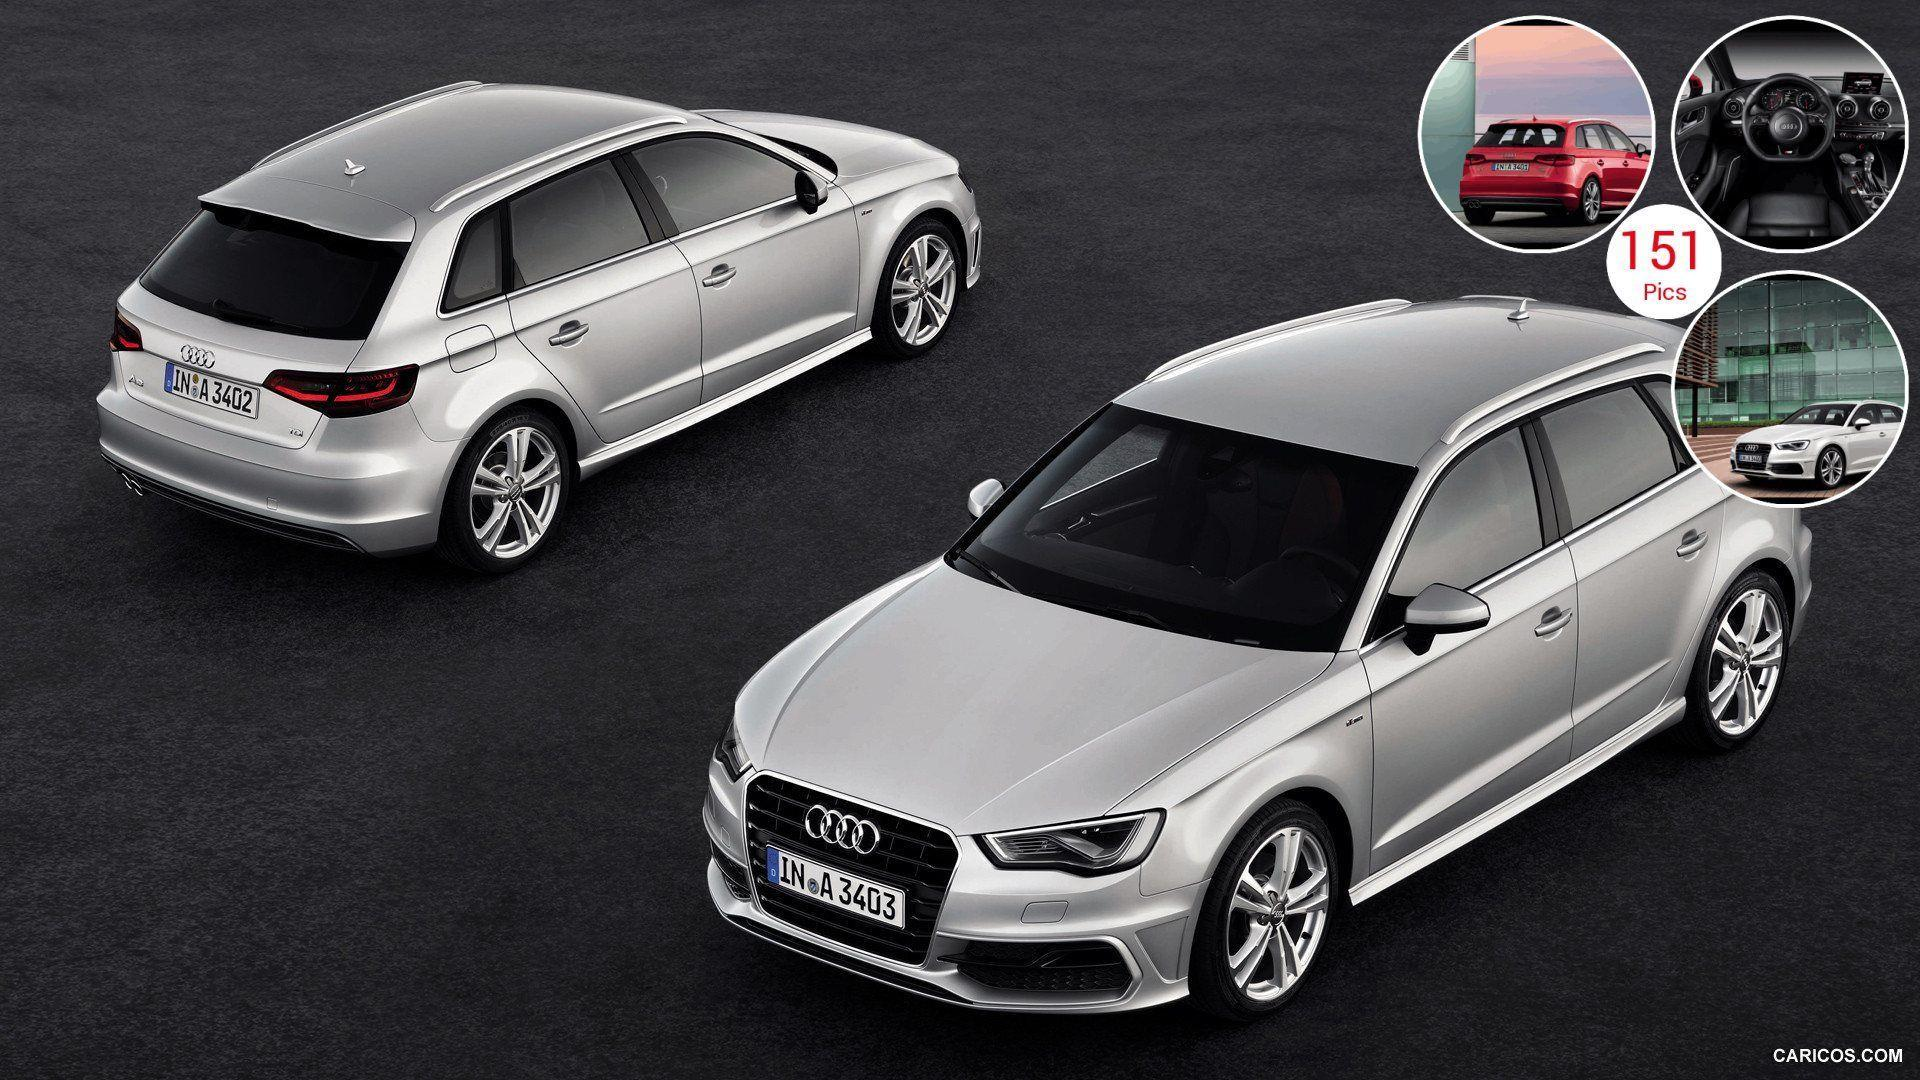 2013 Audi A3 Hatchback Wallpaper | Wide Wallpaper Collections